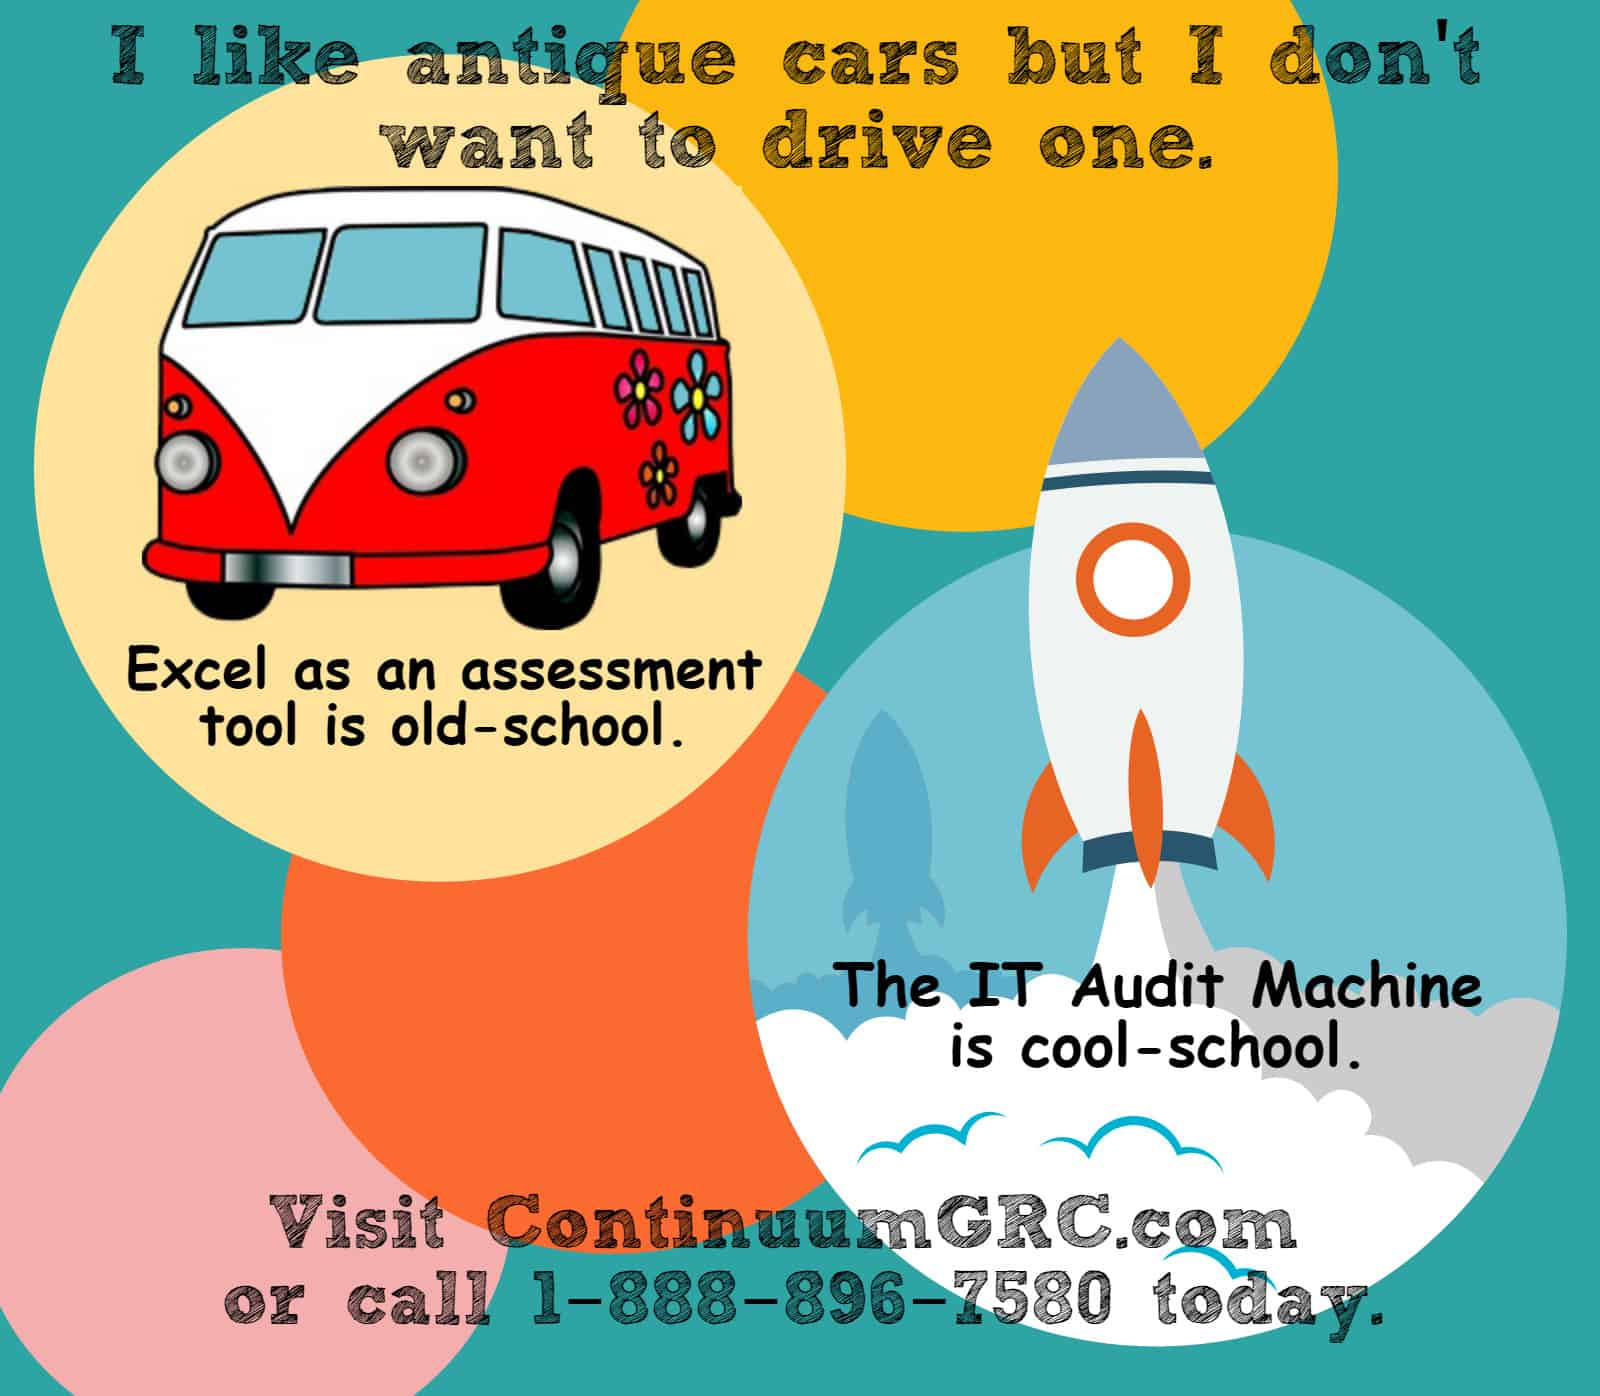 Cool School -vs- Old School compares assessments done with Excel and the IT Audit Machine.